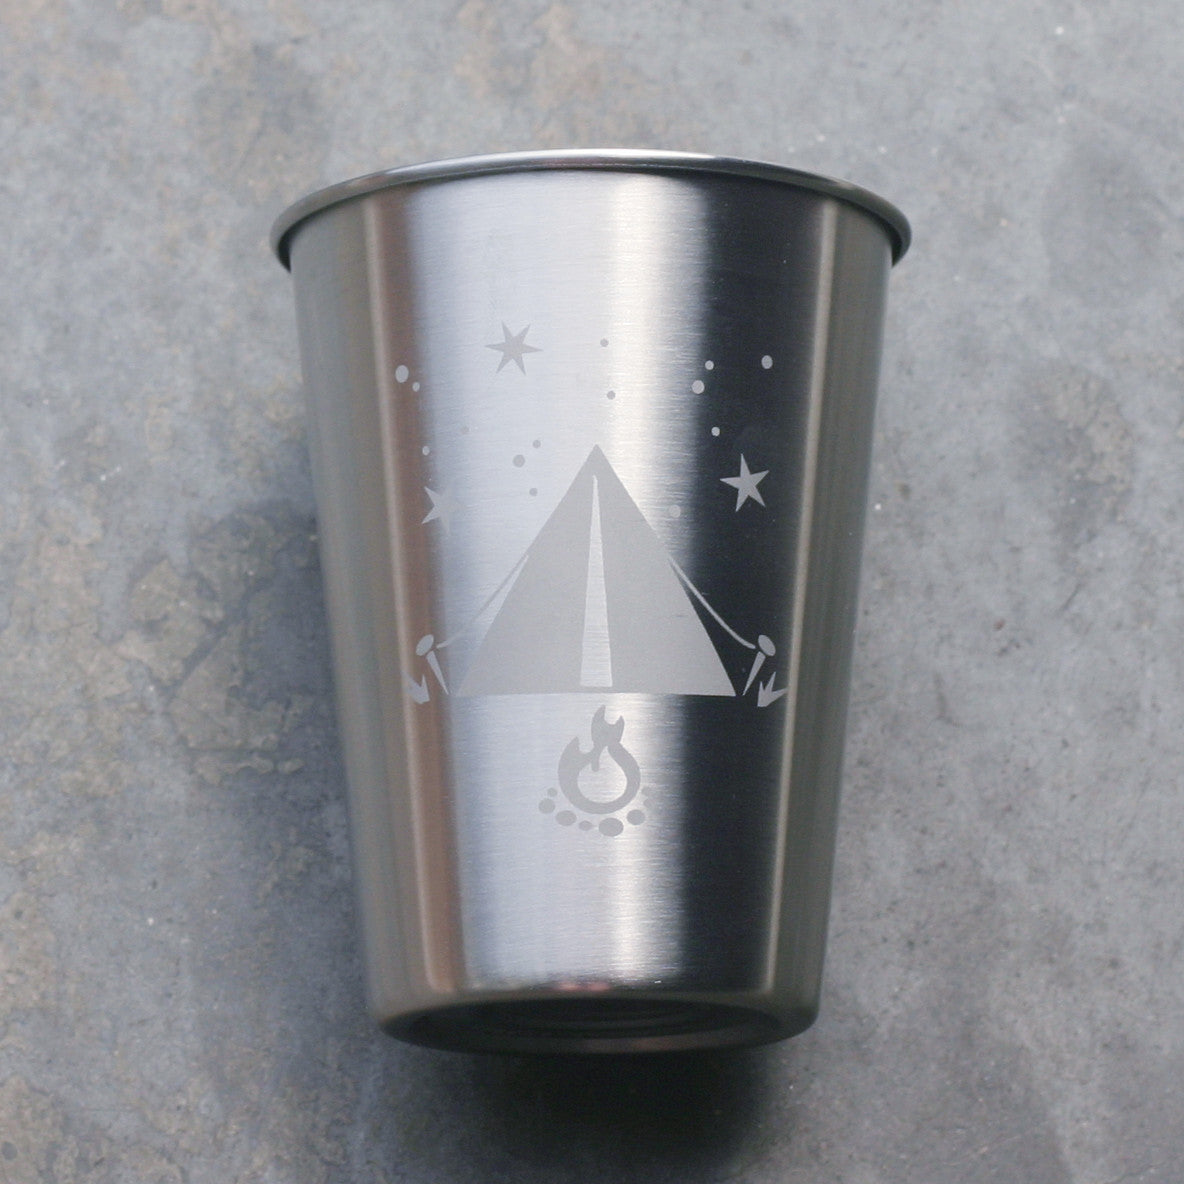 Tent camping stainless steel 12oz cup